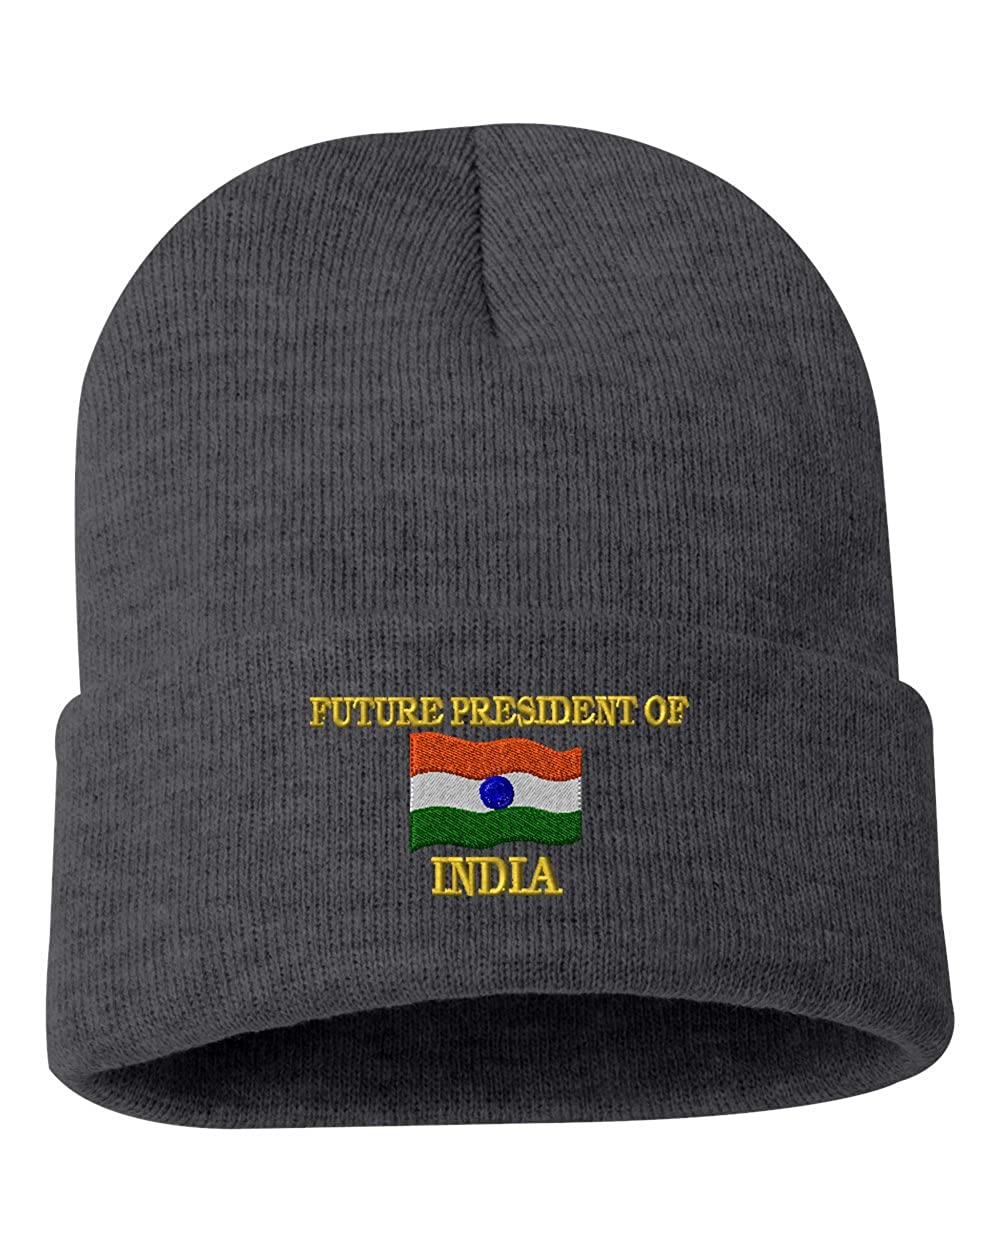 FUTURE PRESIDENT OF INDIA Custom Personalized Embroidery Embroidered Beanie